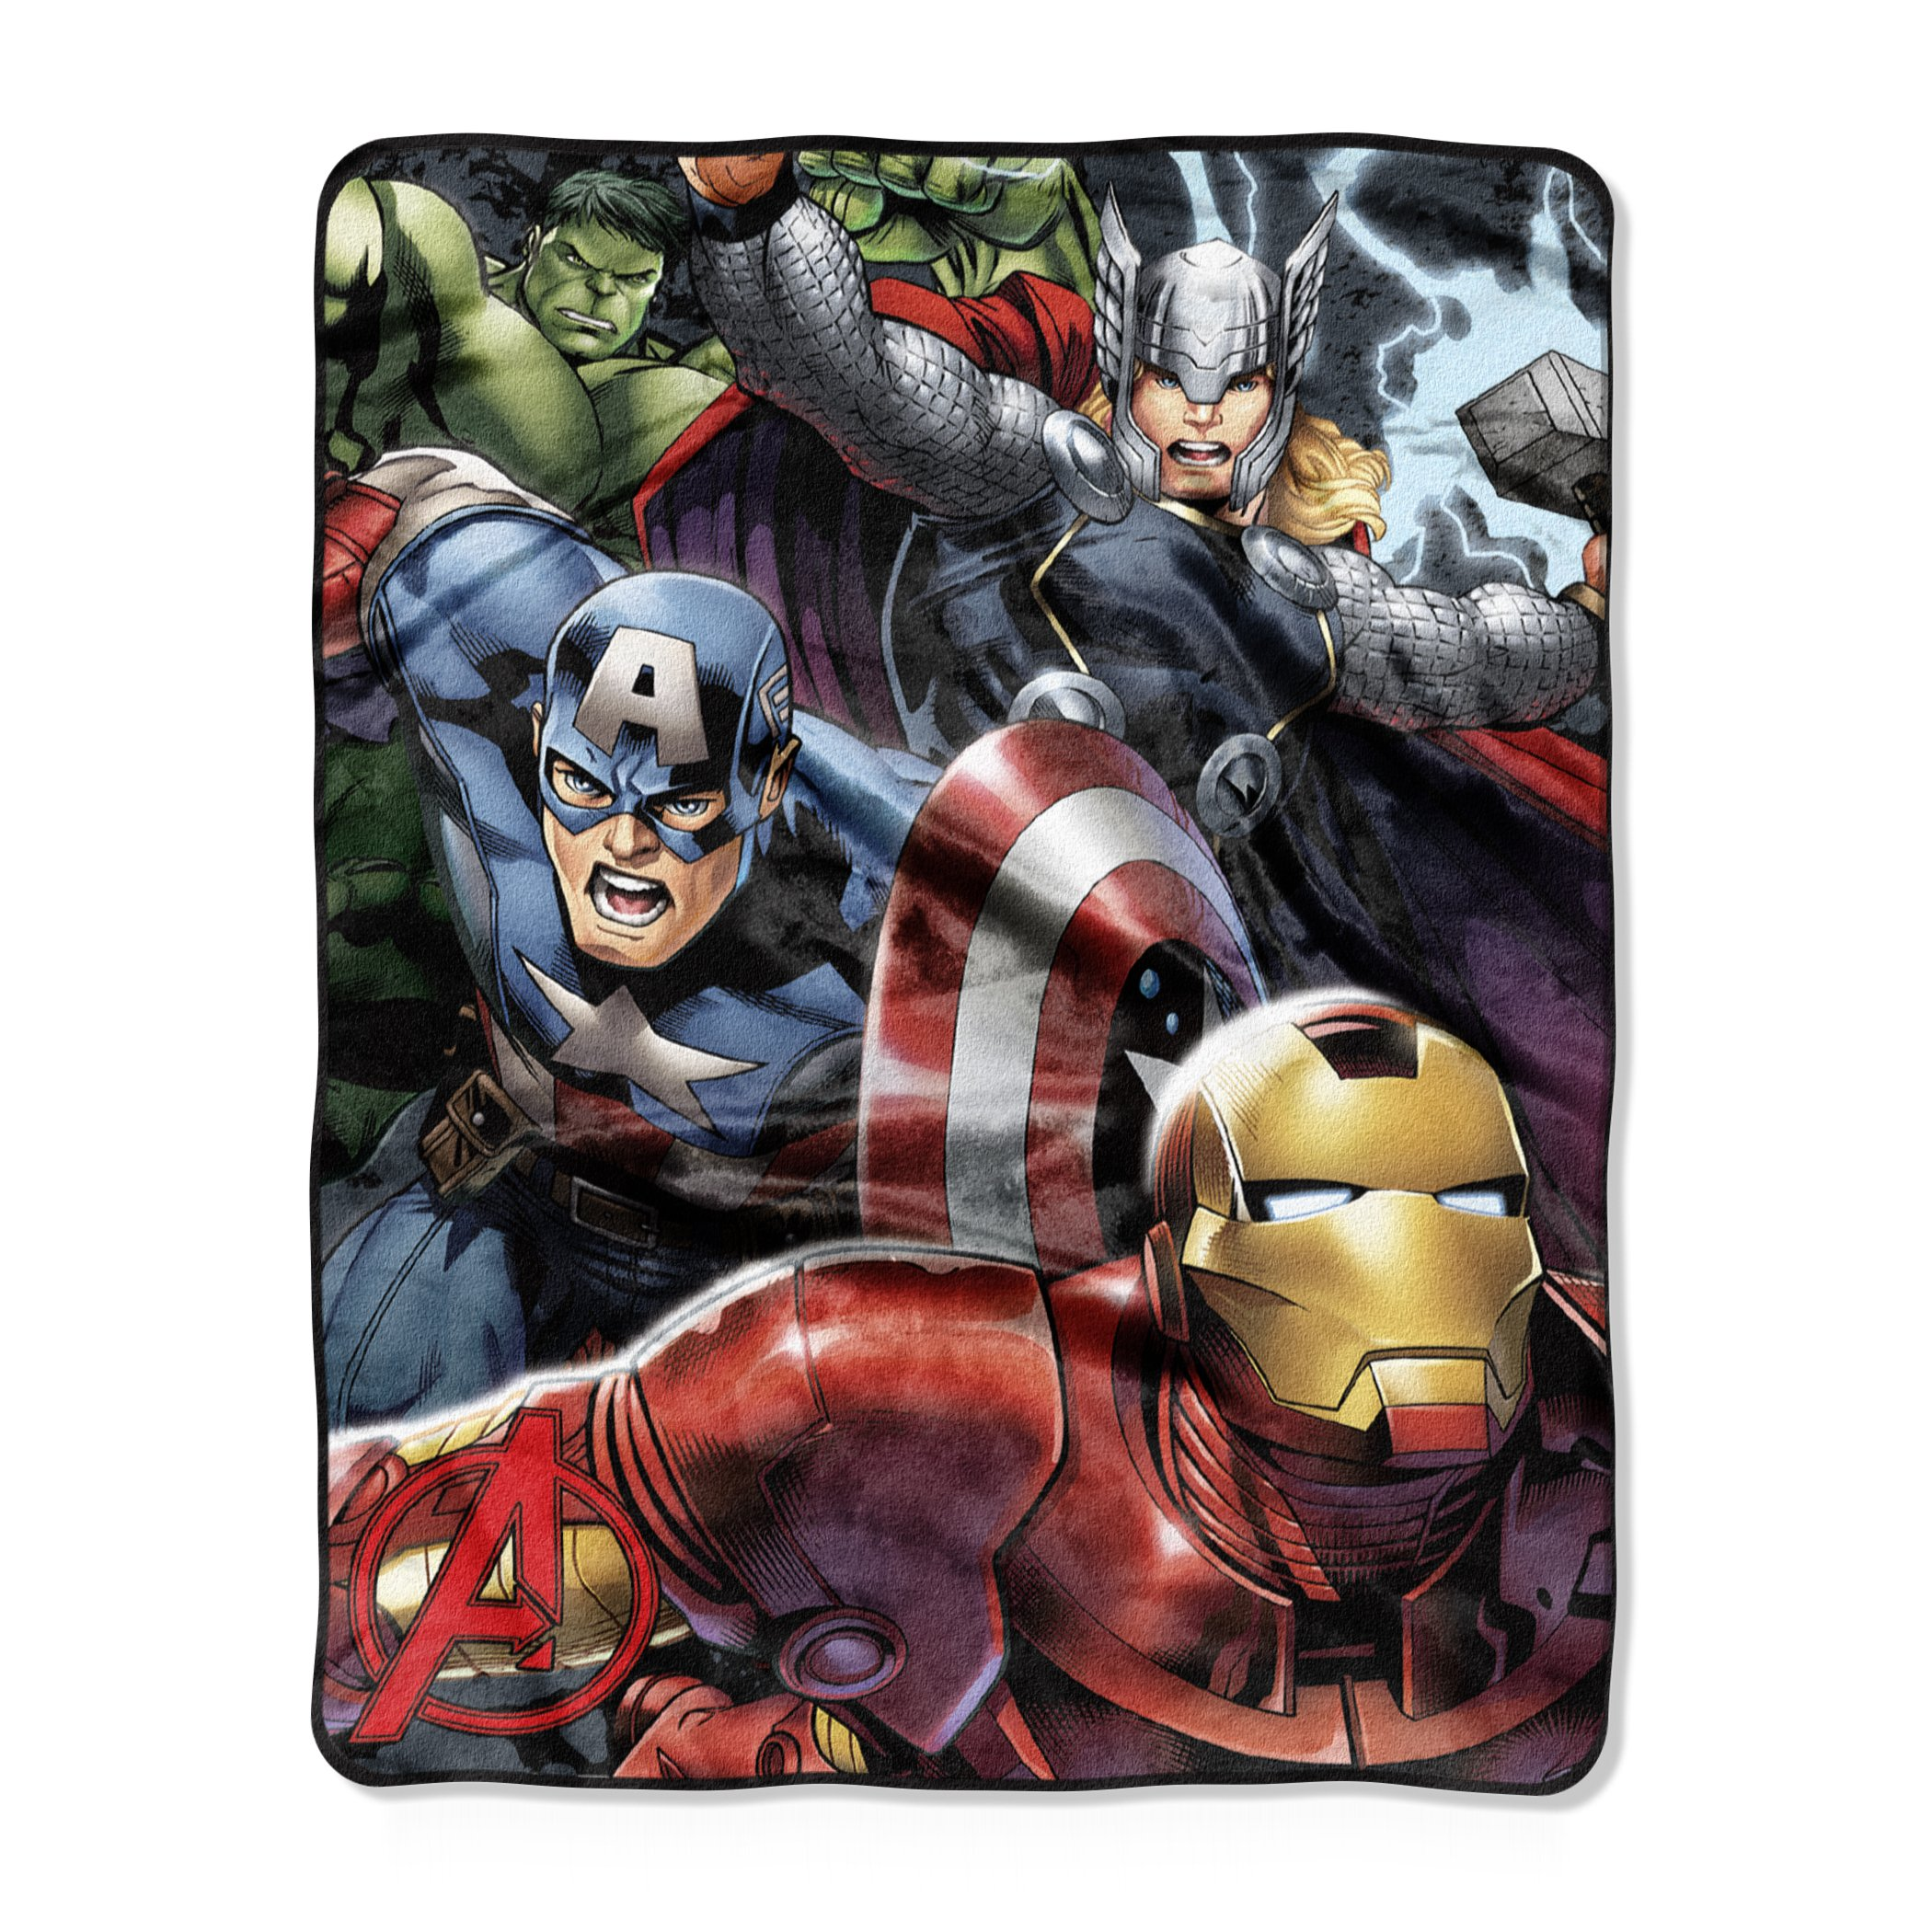 Marvel Avengers ''Teammates'' Silk Touch Throw Blanket, 40'' x 50''